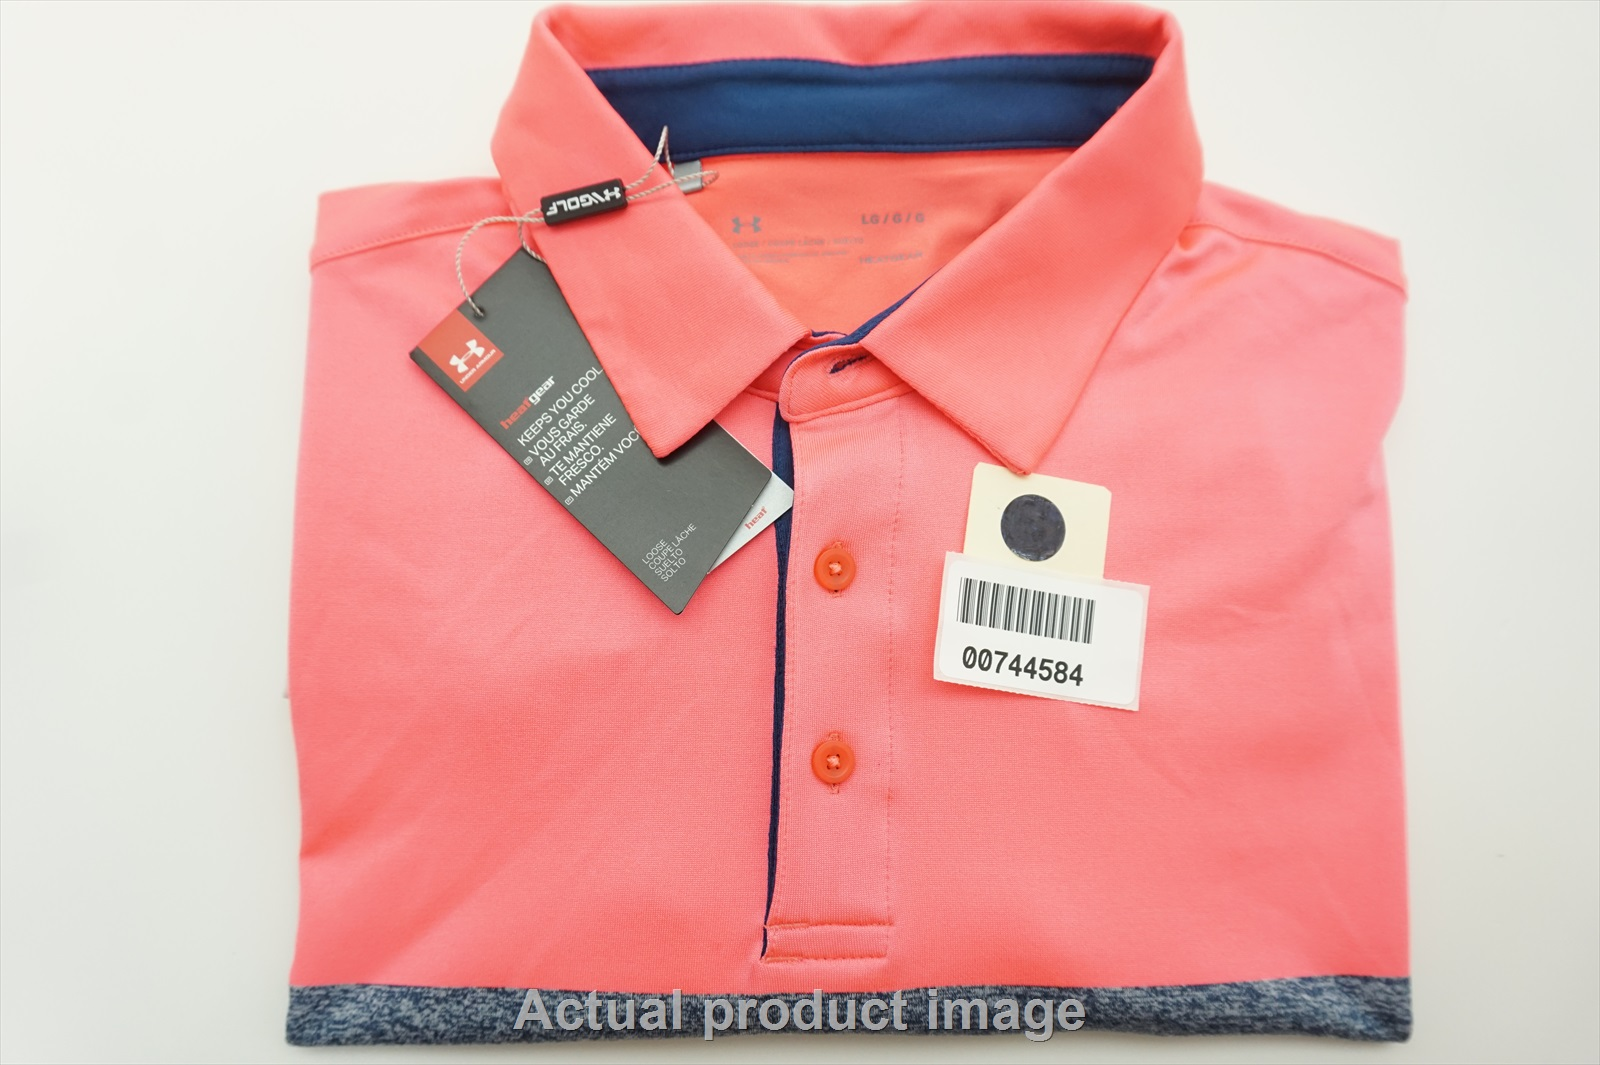 083a3cb39 NEW Under Armour Golf Heatgear Polo Mens Size Large 229a. Choose From Our  Growing Collection of Golf Threads. Major Golf Brands. Great Savings